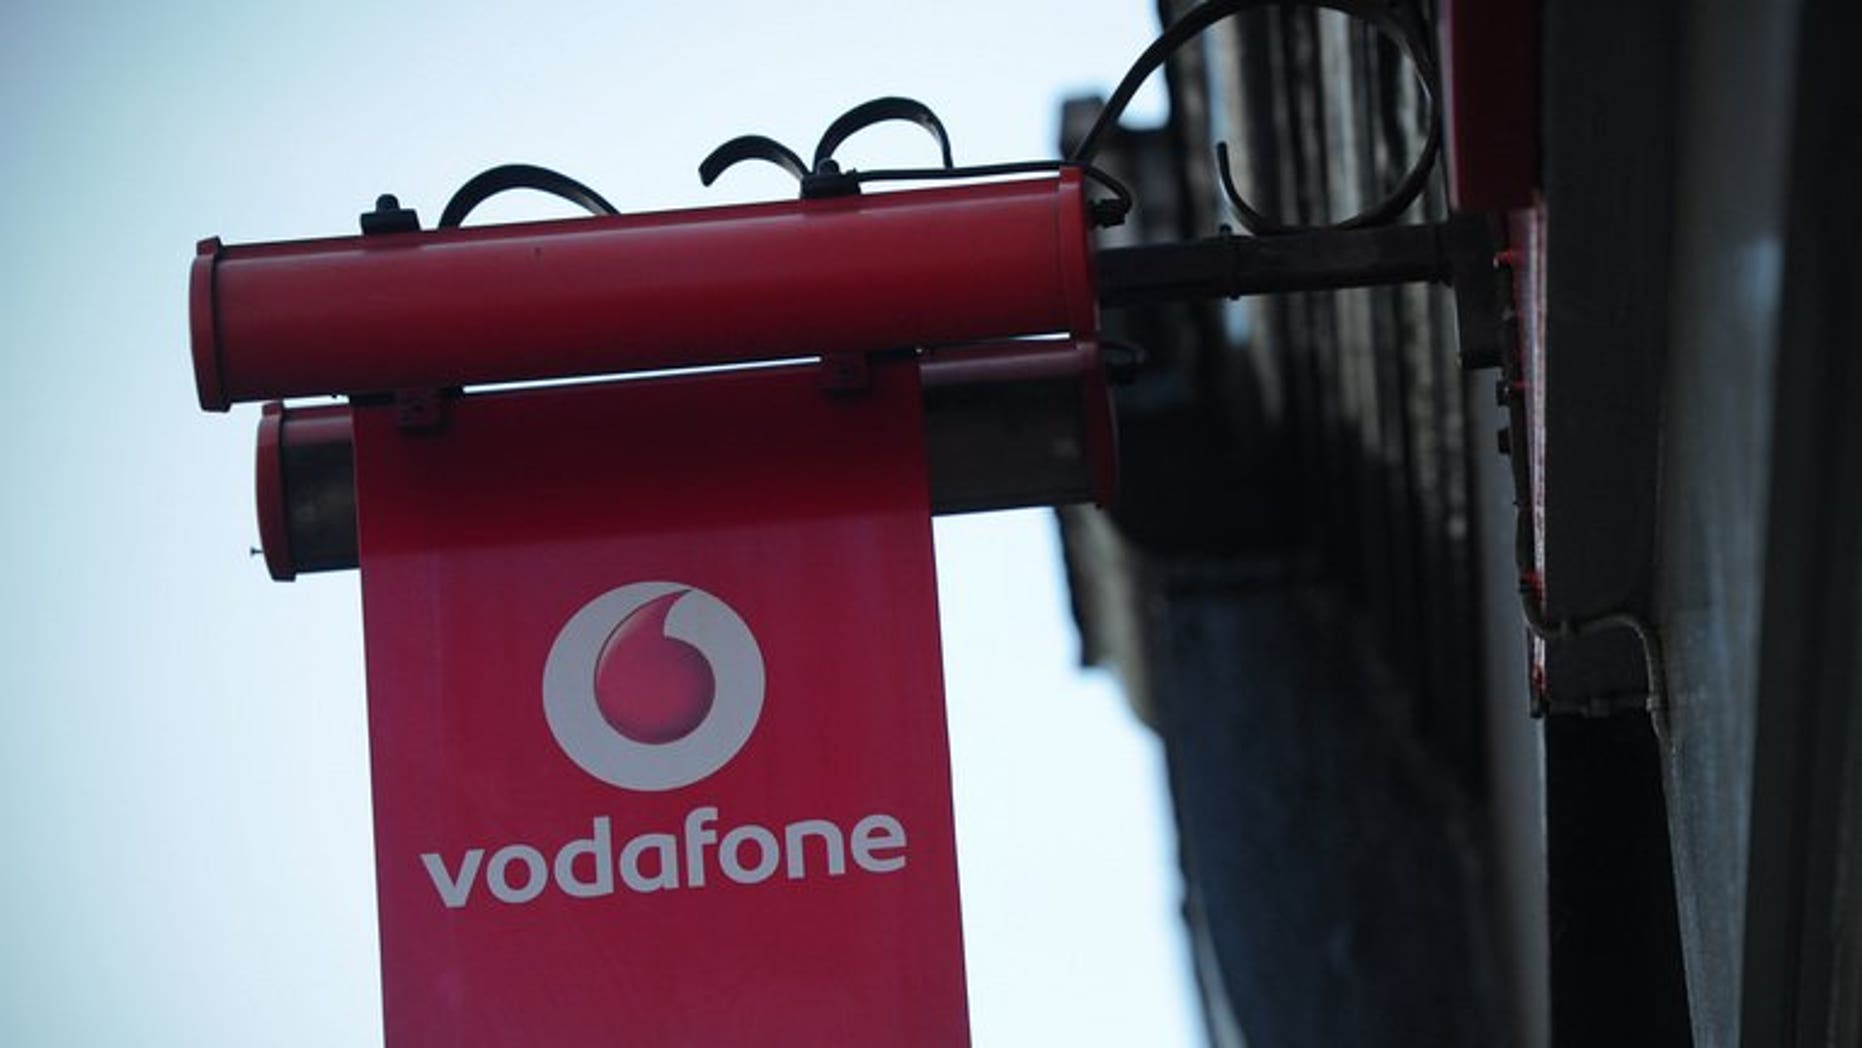 A sign outside a Vodafone shop in London. British mobile phone giant Vodafone said on Friday that sales grew in the first quarter, as strength in emerging markets countered weakness in Europe.